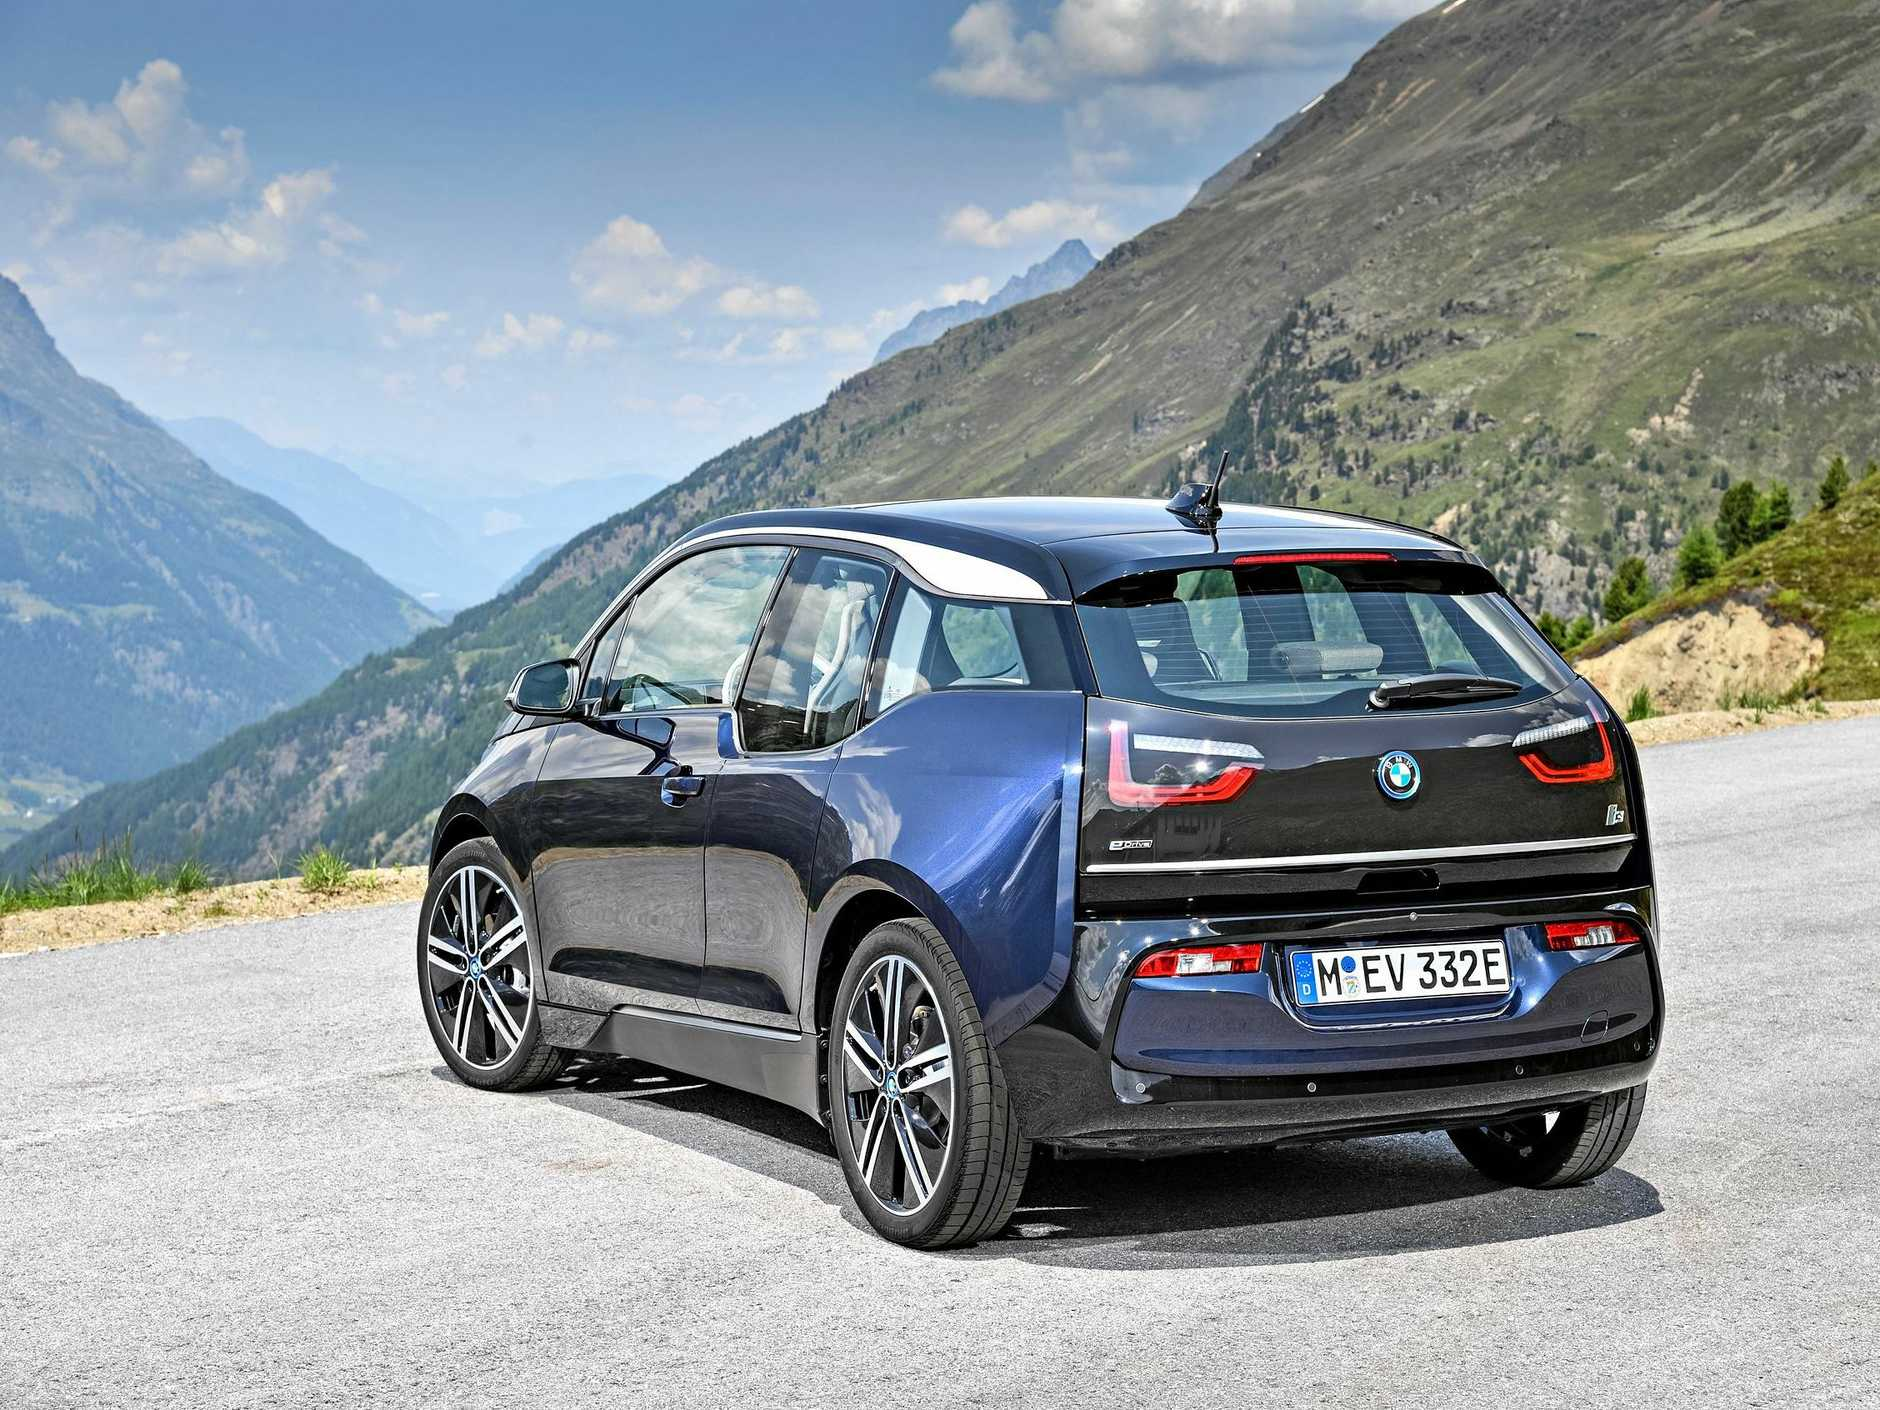 The 2018 BMW i3 will be in dealerships from January.